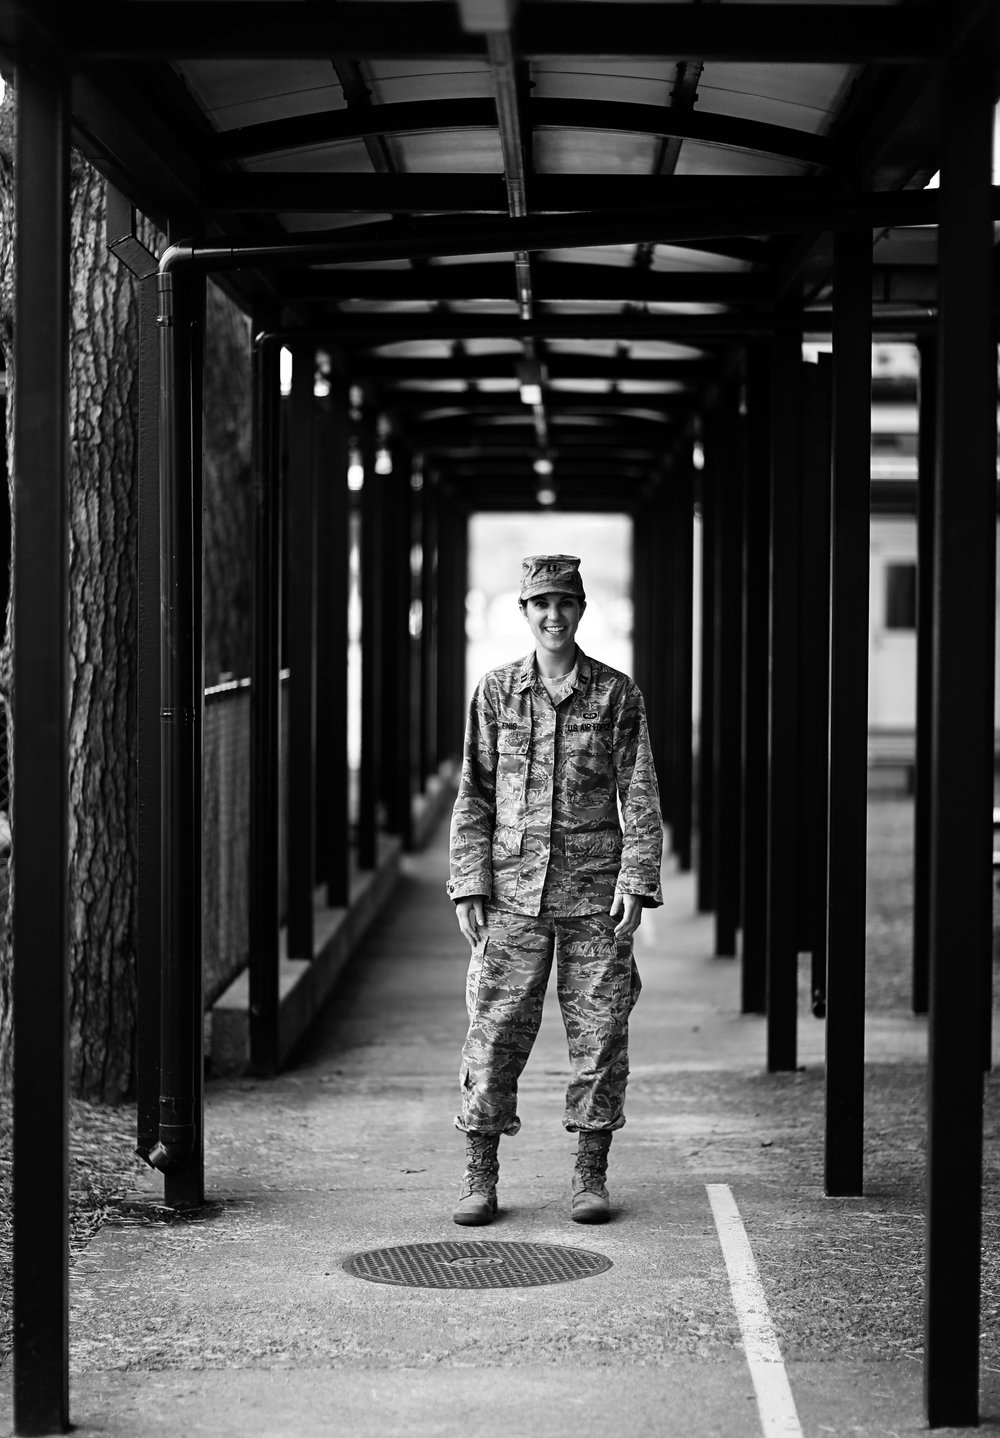 29. Does it matter that you are a female? If yes, why/what? It does! I believe in strength in diversity whether that be by gender, socioeconomic background, ethnicity, etc. The military is male dominated, but the more diverse we can become, I think the stronger we will become. -